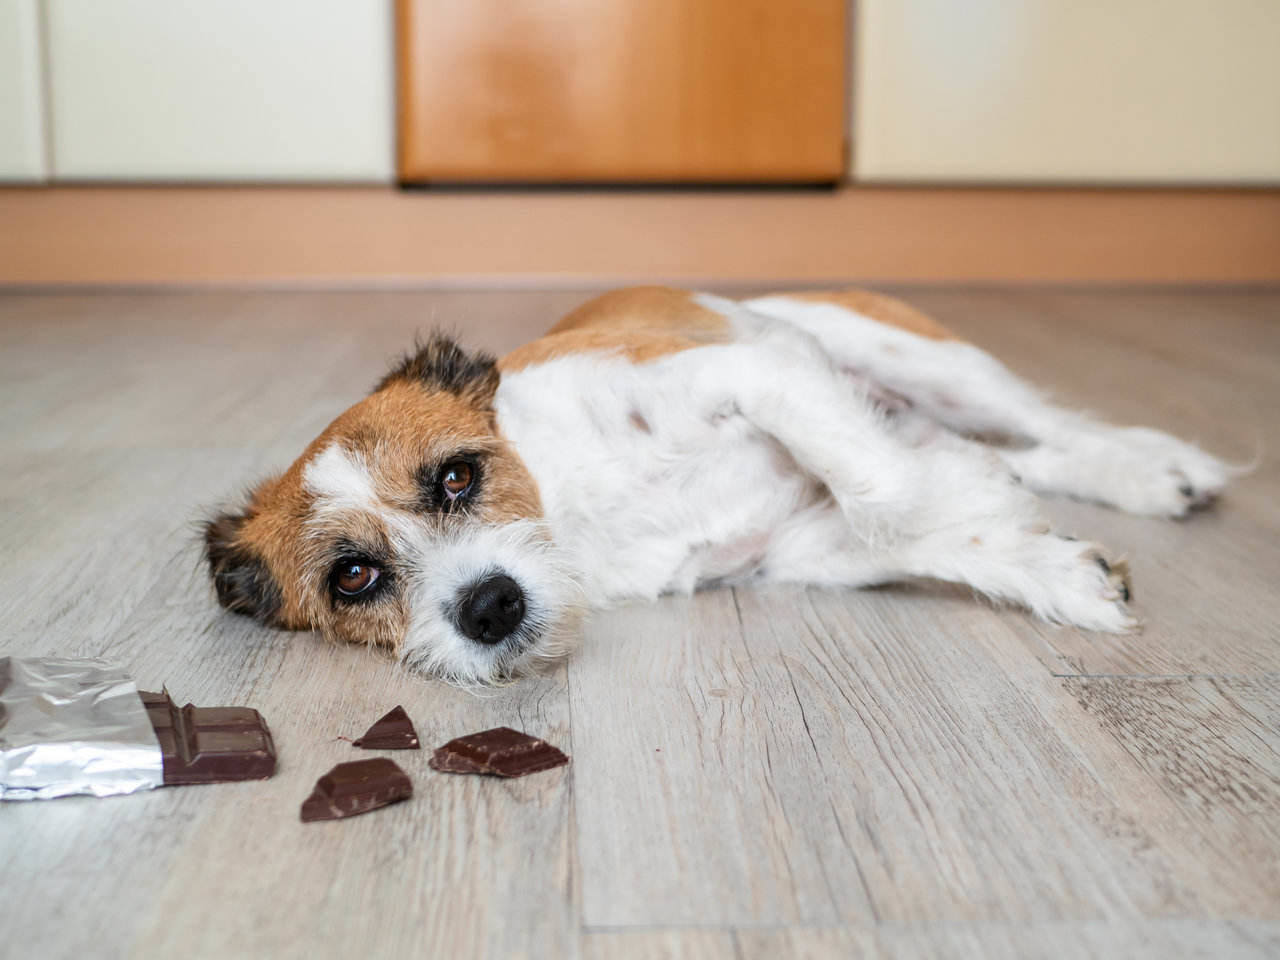 Why cant dogs eat chocolate Why cant dogs eat chocolate? Why is it bad for them?